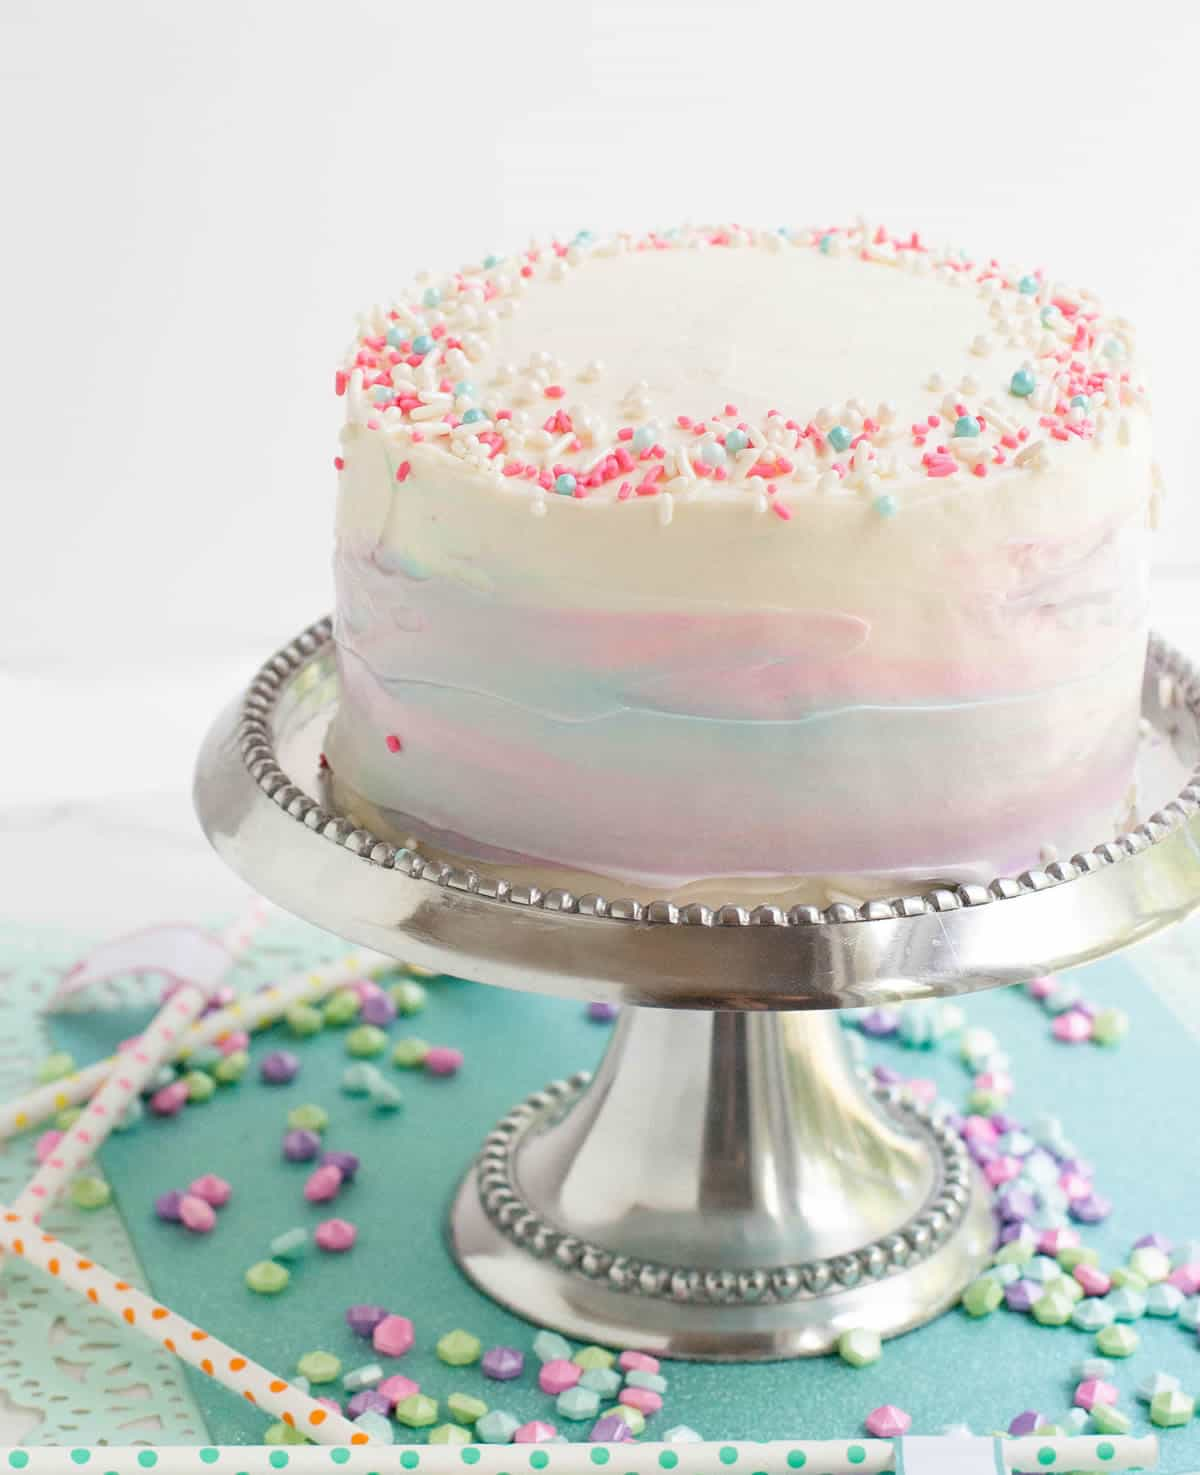 The Merchant Baker Turns 2! I'm celebrating with a little unicorn inspired cake, frosted with my favorite Whipped Cream Cream Cheese Frosting!